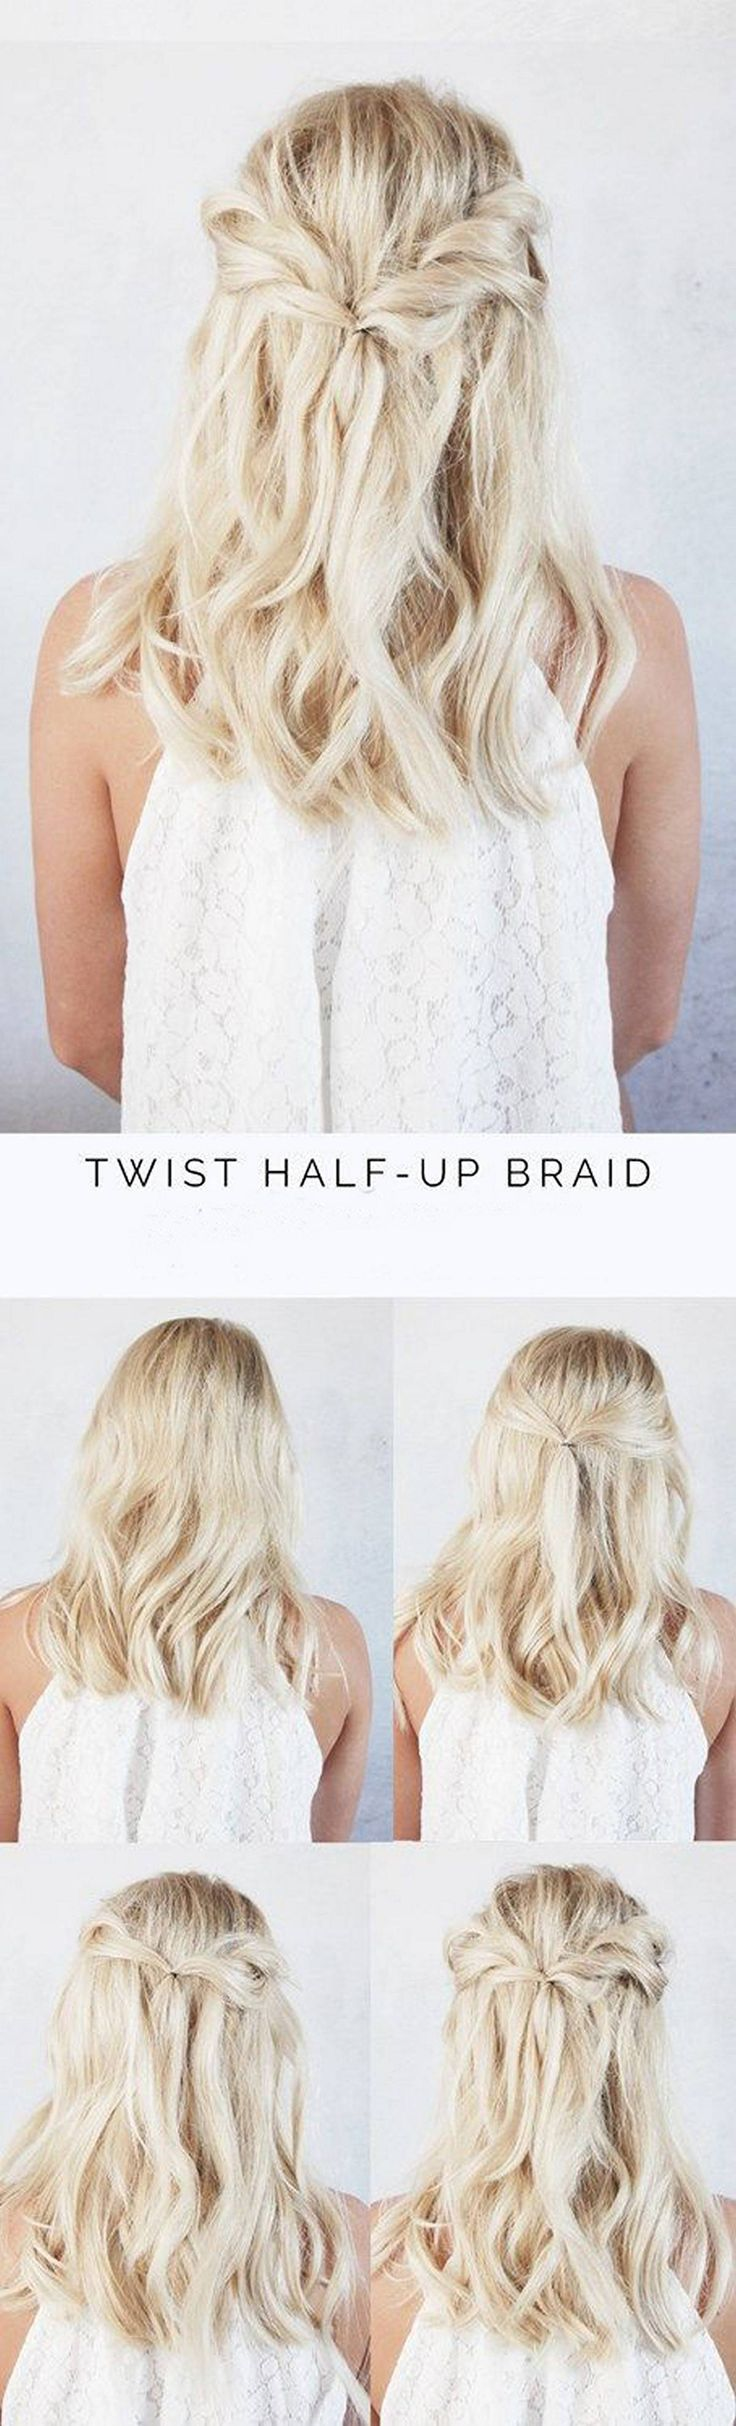 Must have 210 Hairstyles DIY and Tutorial For All Hair Lengths | Fashion